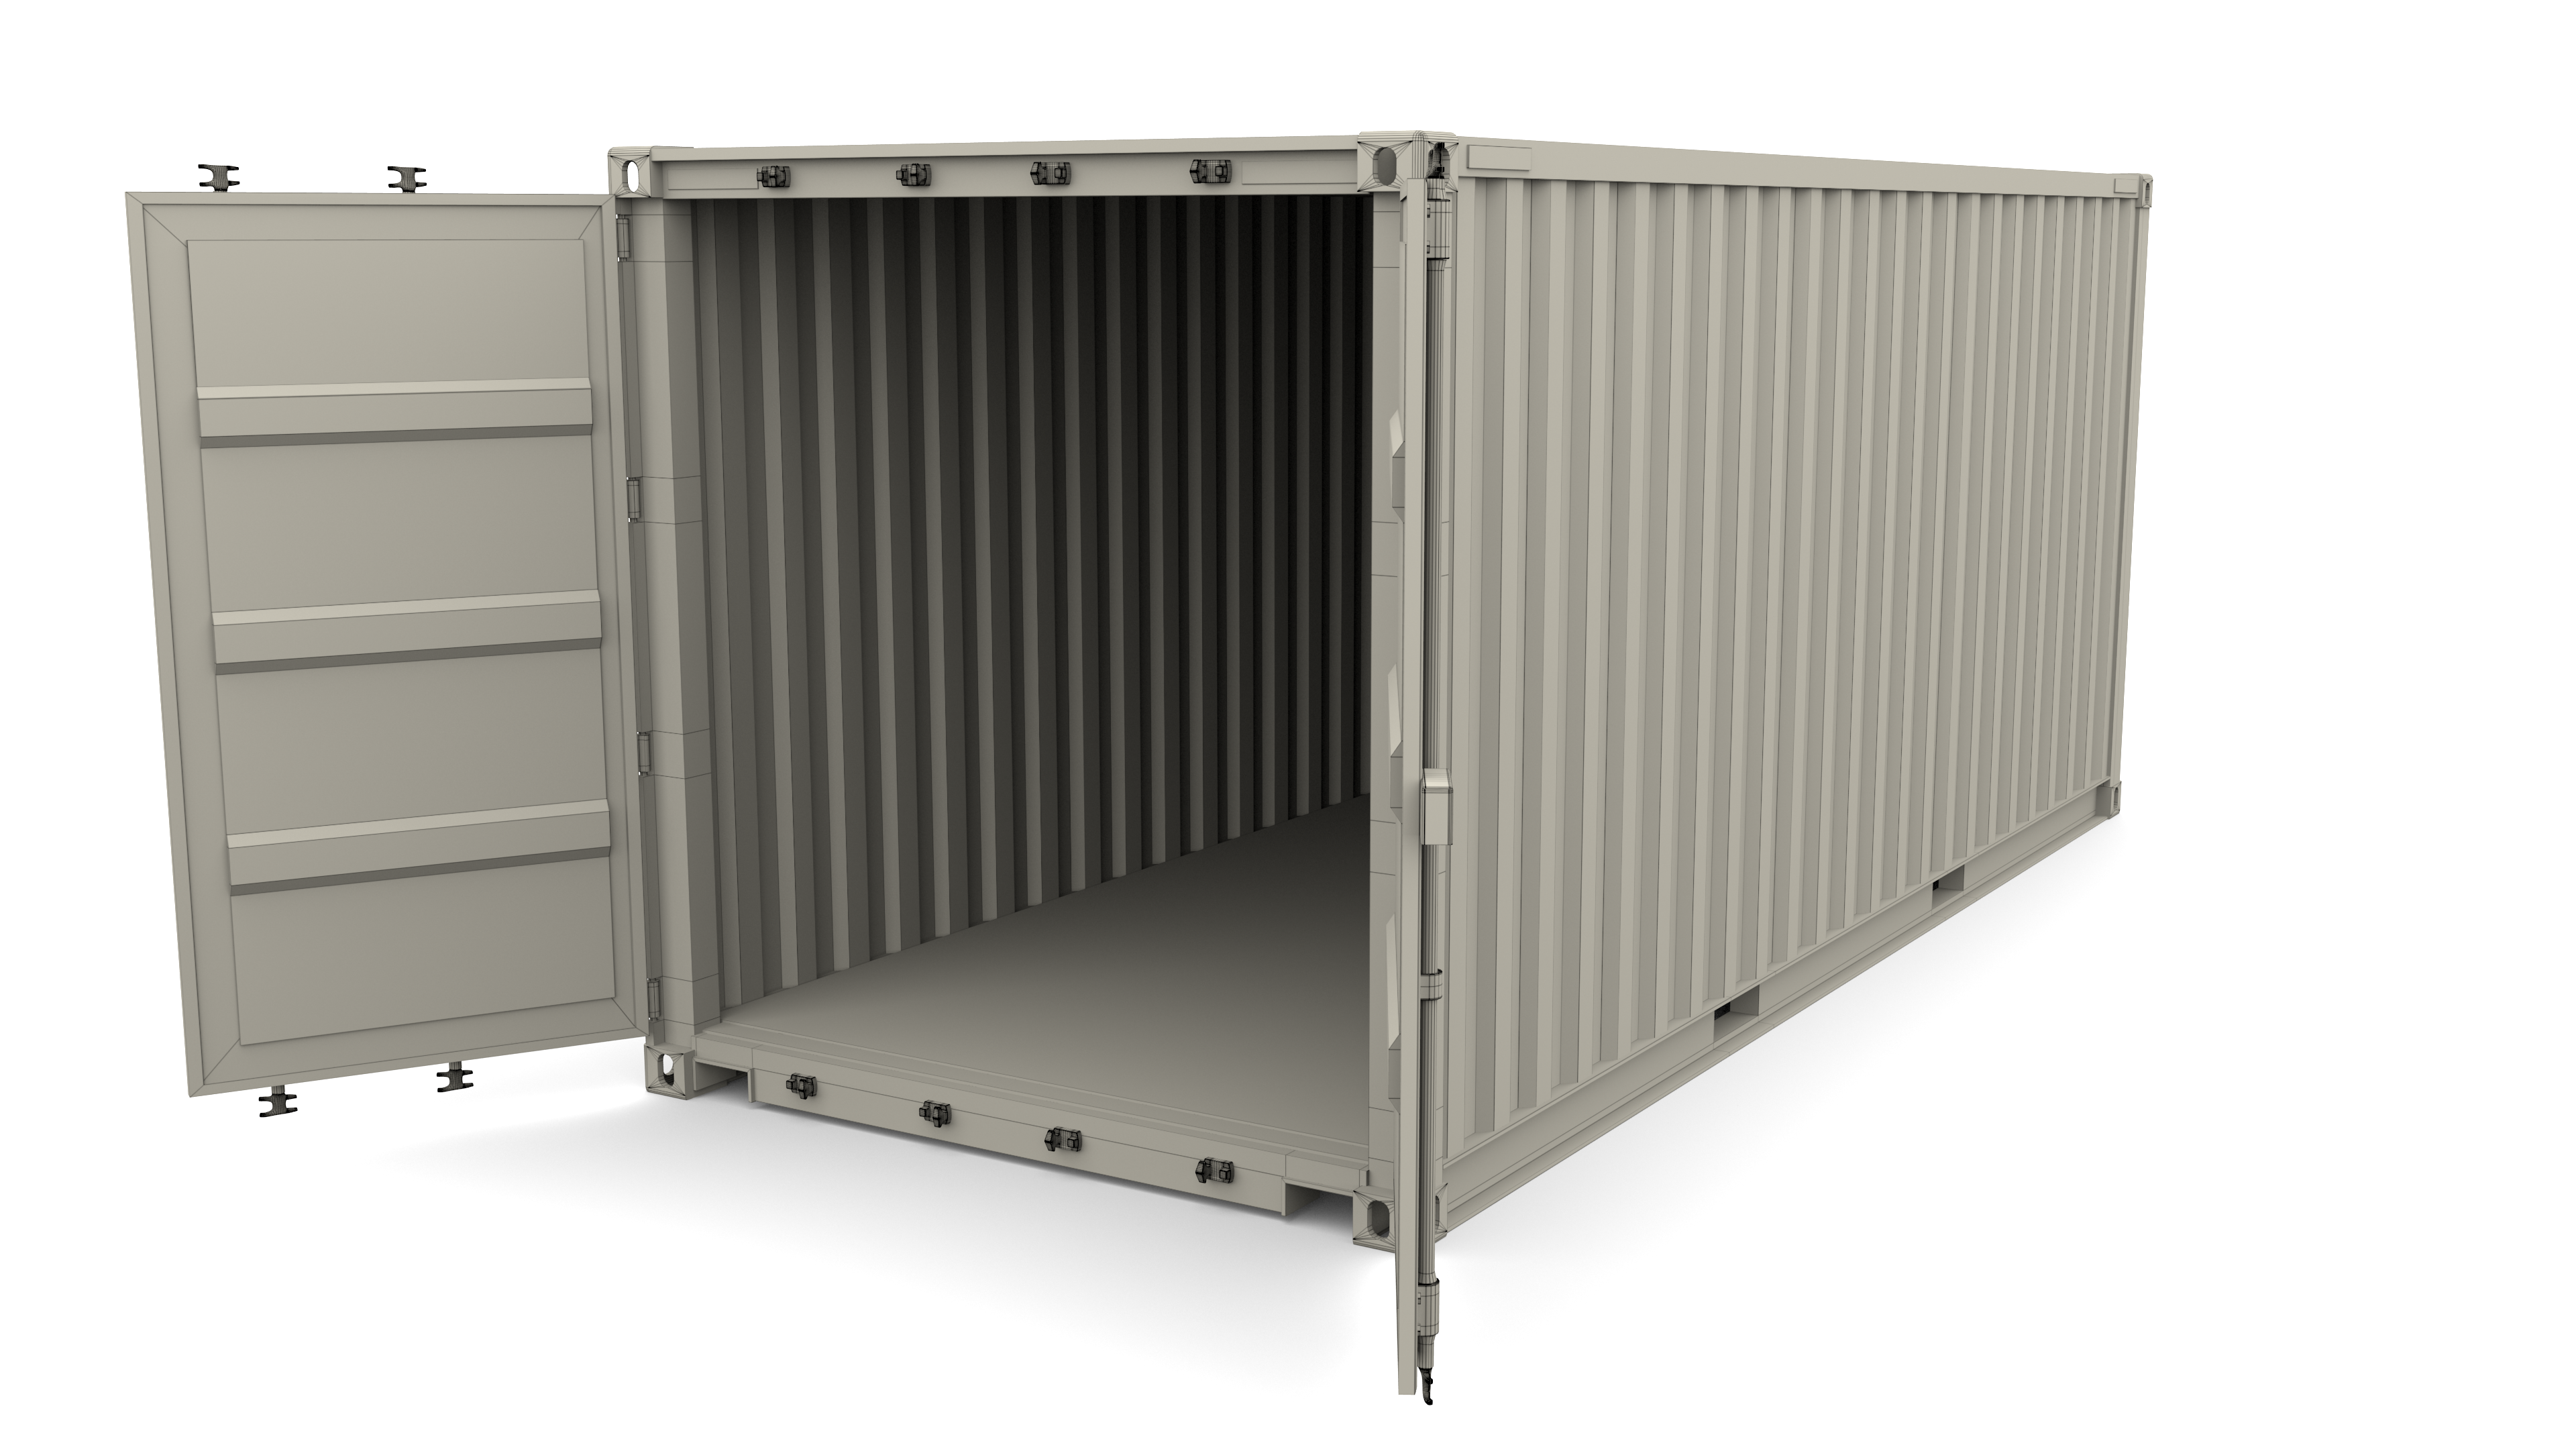 20ft Shipping Container Side Open 20ft Shipping Container Shipping Container Container